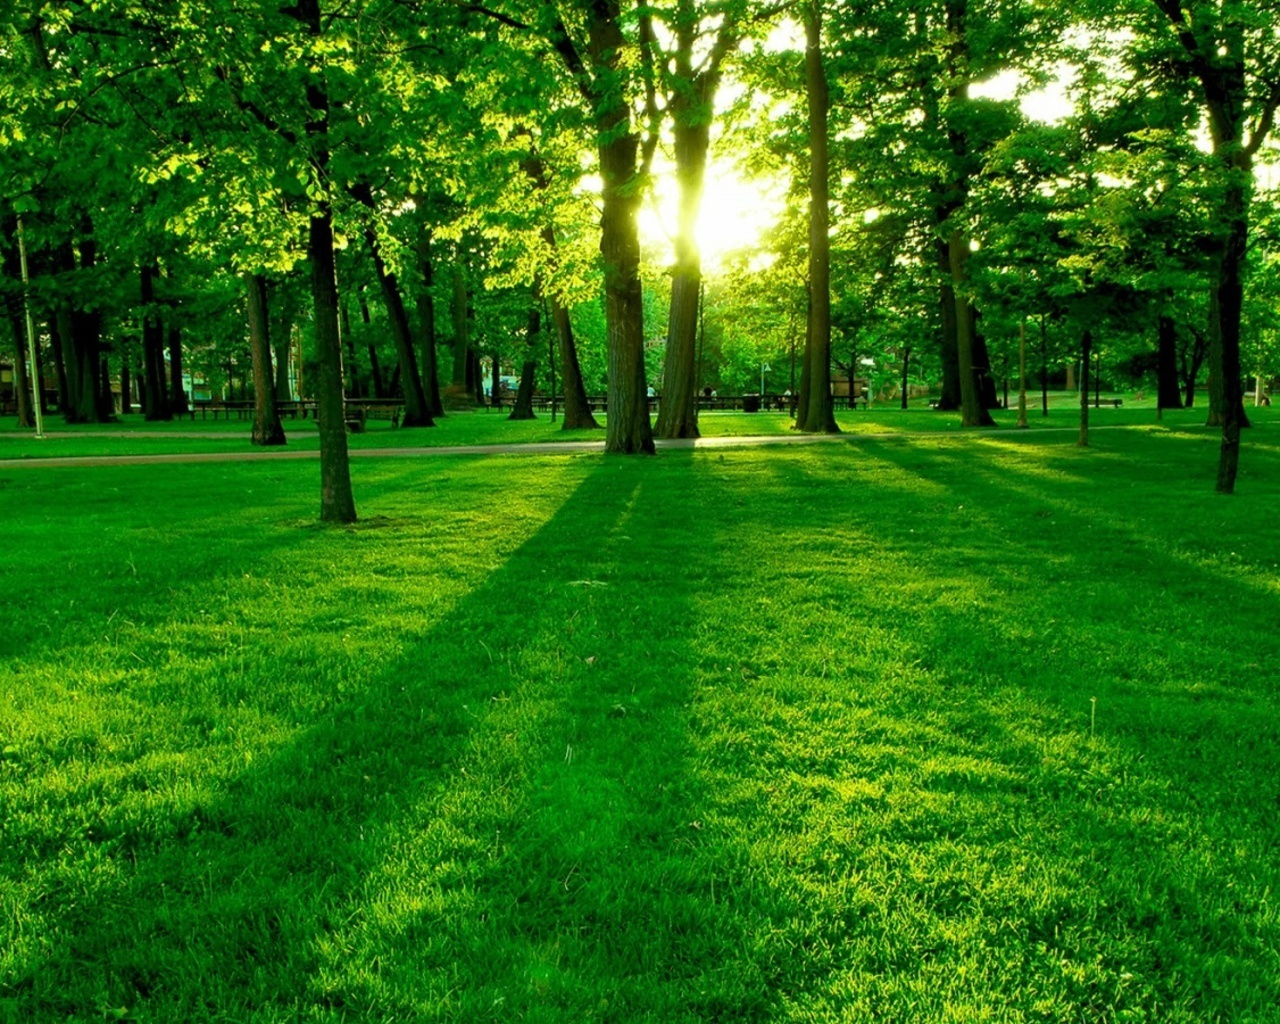 Green Images Green Forest Wallpaper Hd Wallpaper And